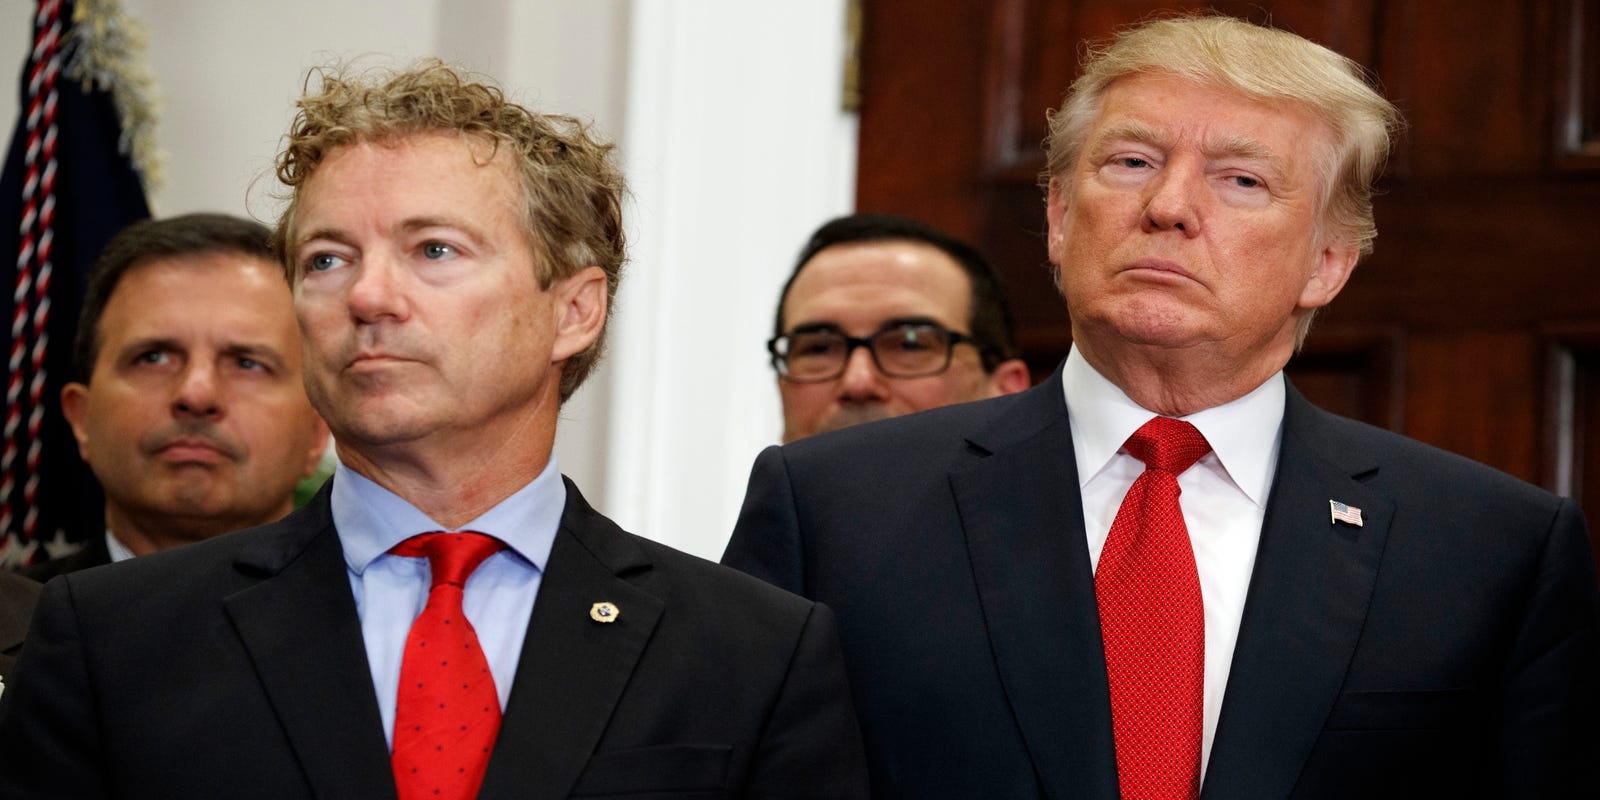 Rand Paul names suspected whistleblower in Trump impeachment inquiry. Is he in trouble?